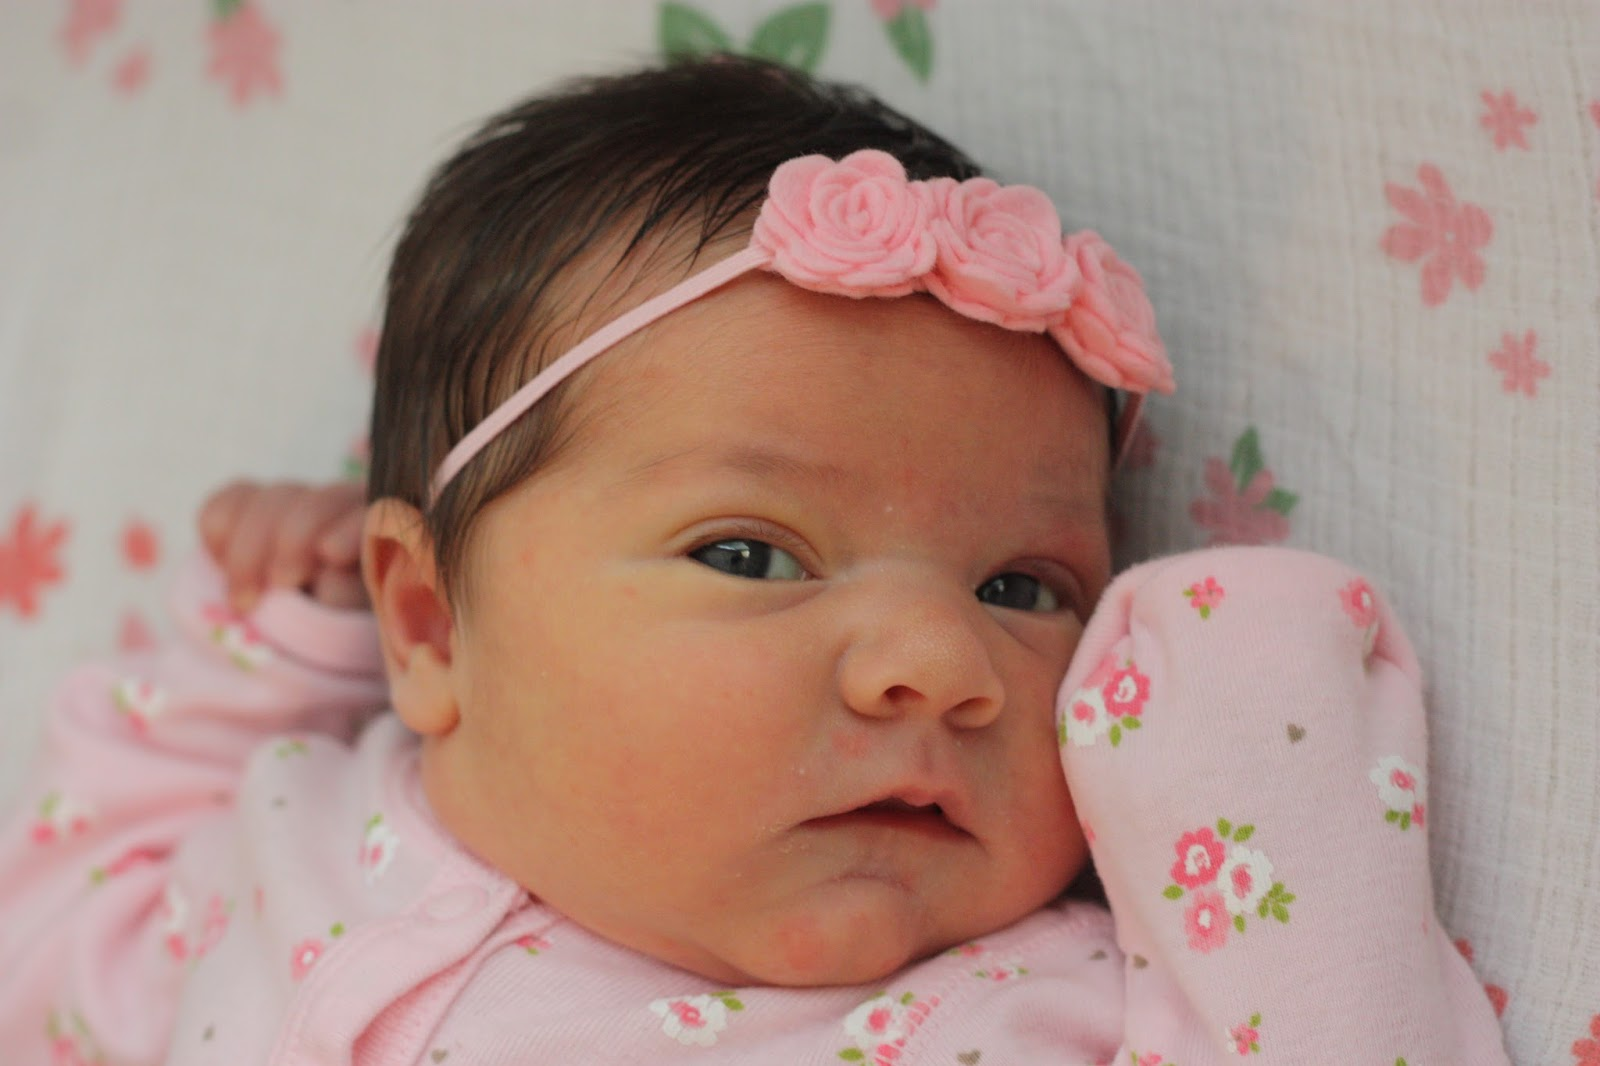 introducing baby girl - august 31, 2013 - love, laughter, and a